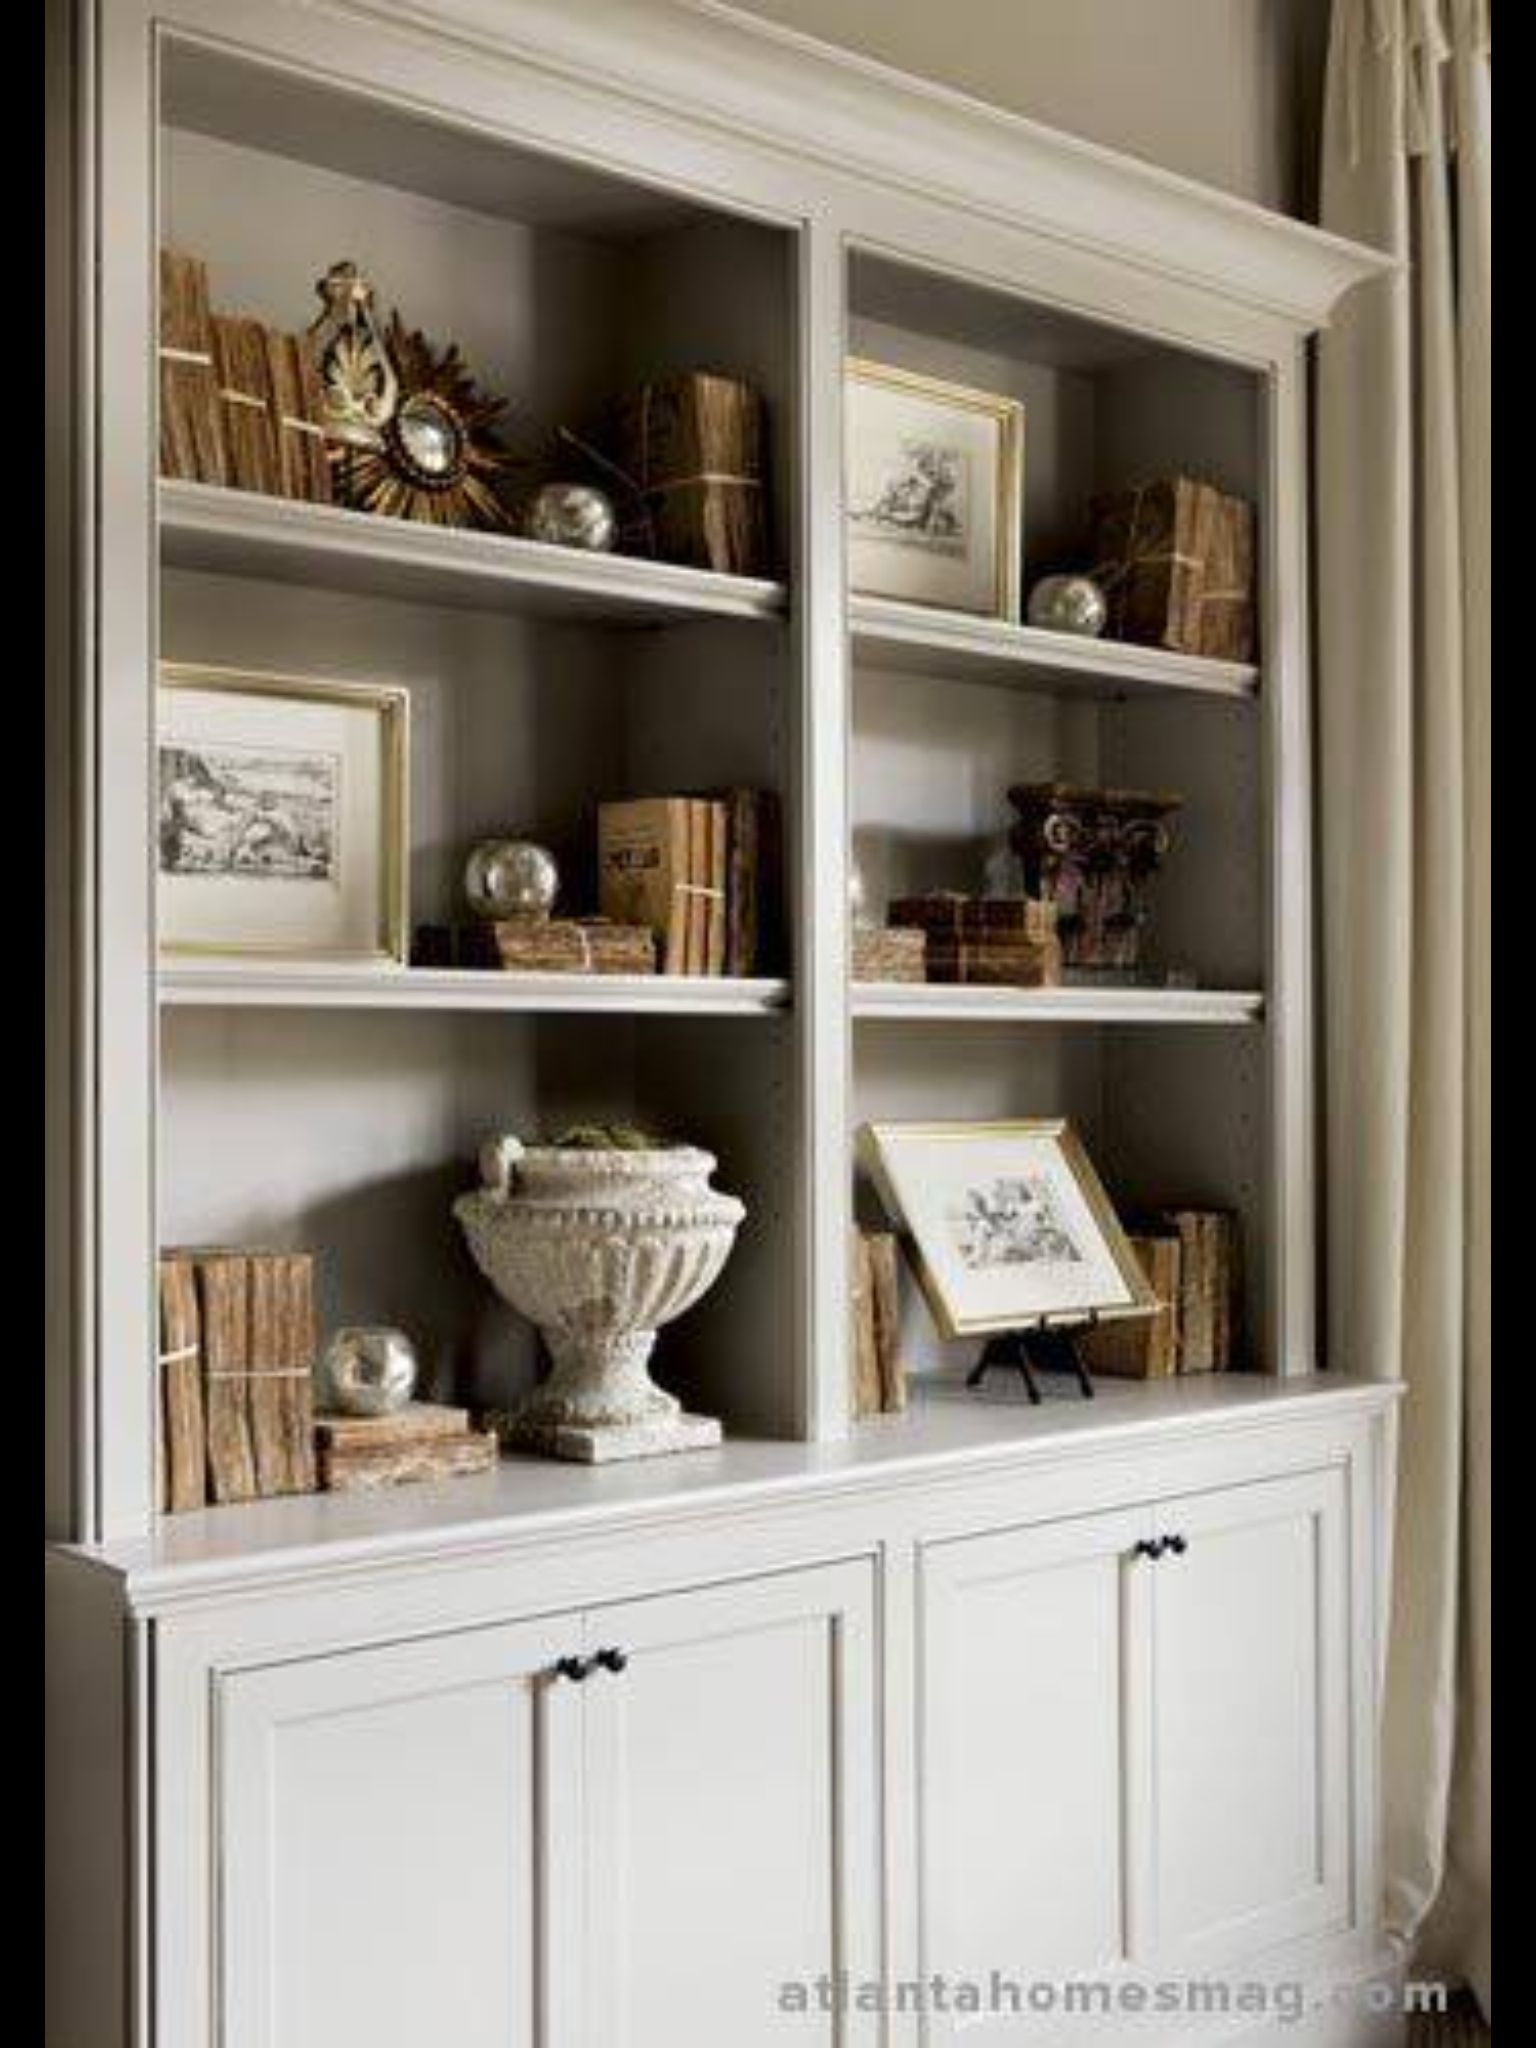 White Bookcases For Guest Room Library Etc In The Cabinets Below